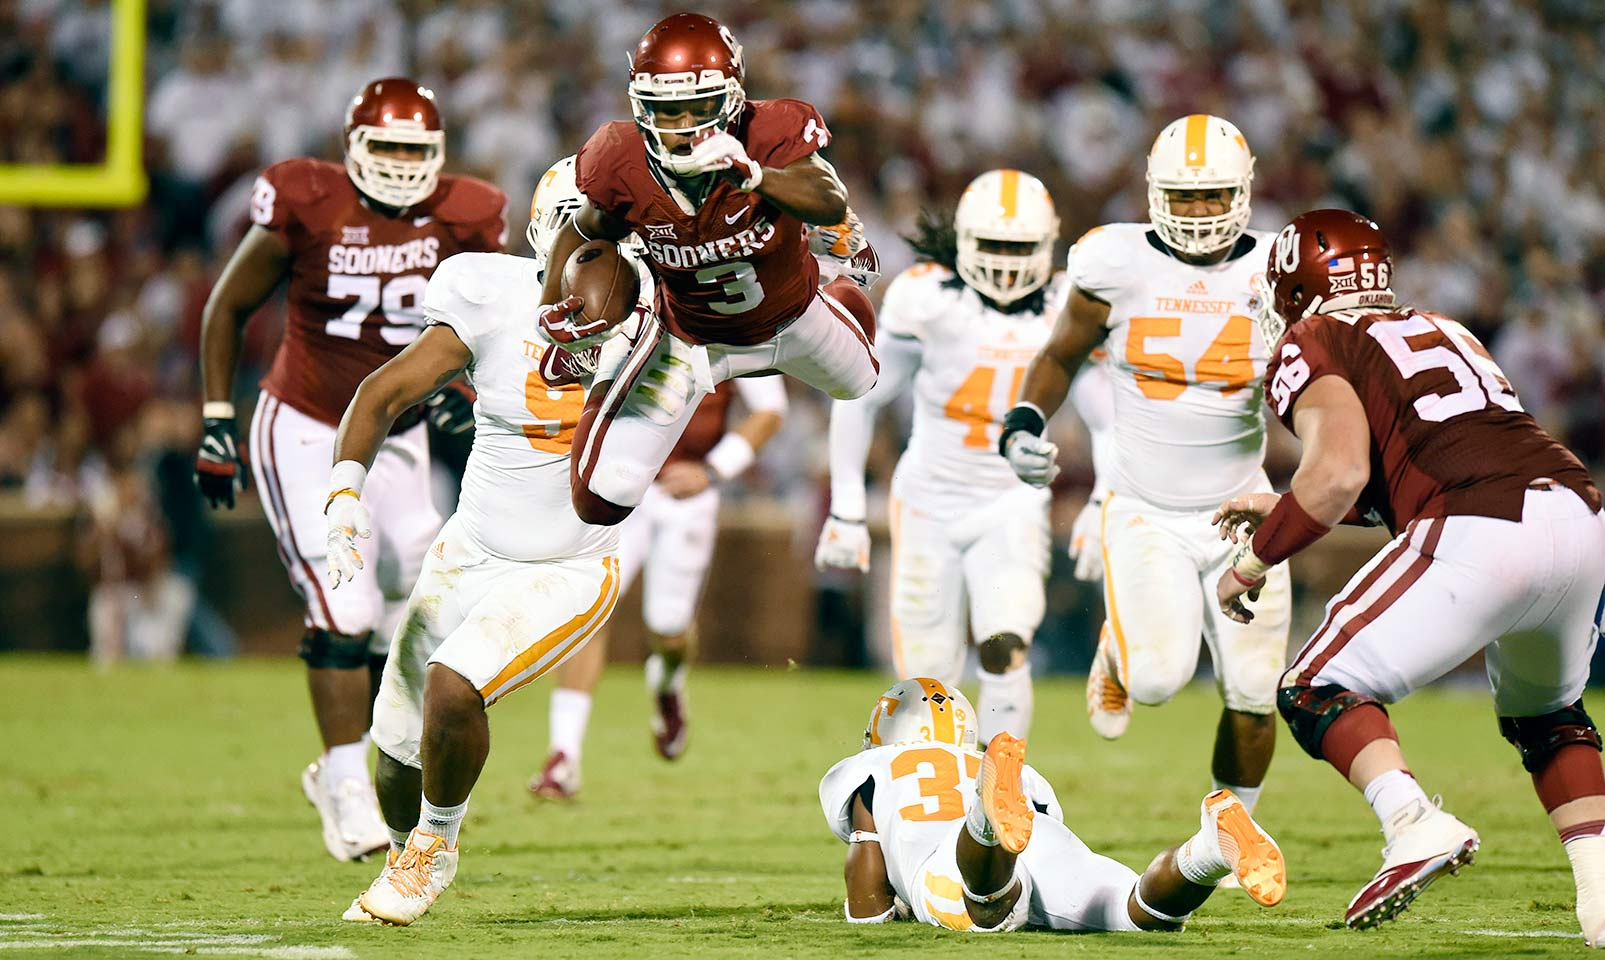 Oklahoma 31, Tennessee 24 (2OT): The Sooners rallied from a 17–3 fourth-quarter deficit, tying the game with 40 seconds left on a Sterling Shepard touchdown reception. Shepard's second touchdown grab in double overtime and Zack Sanchez's interception sealed the win over the Volunteers.